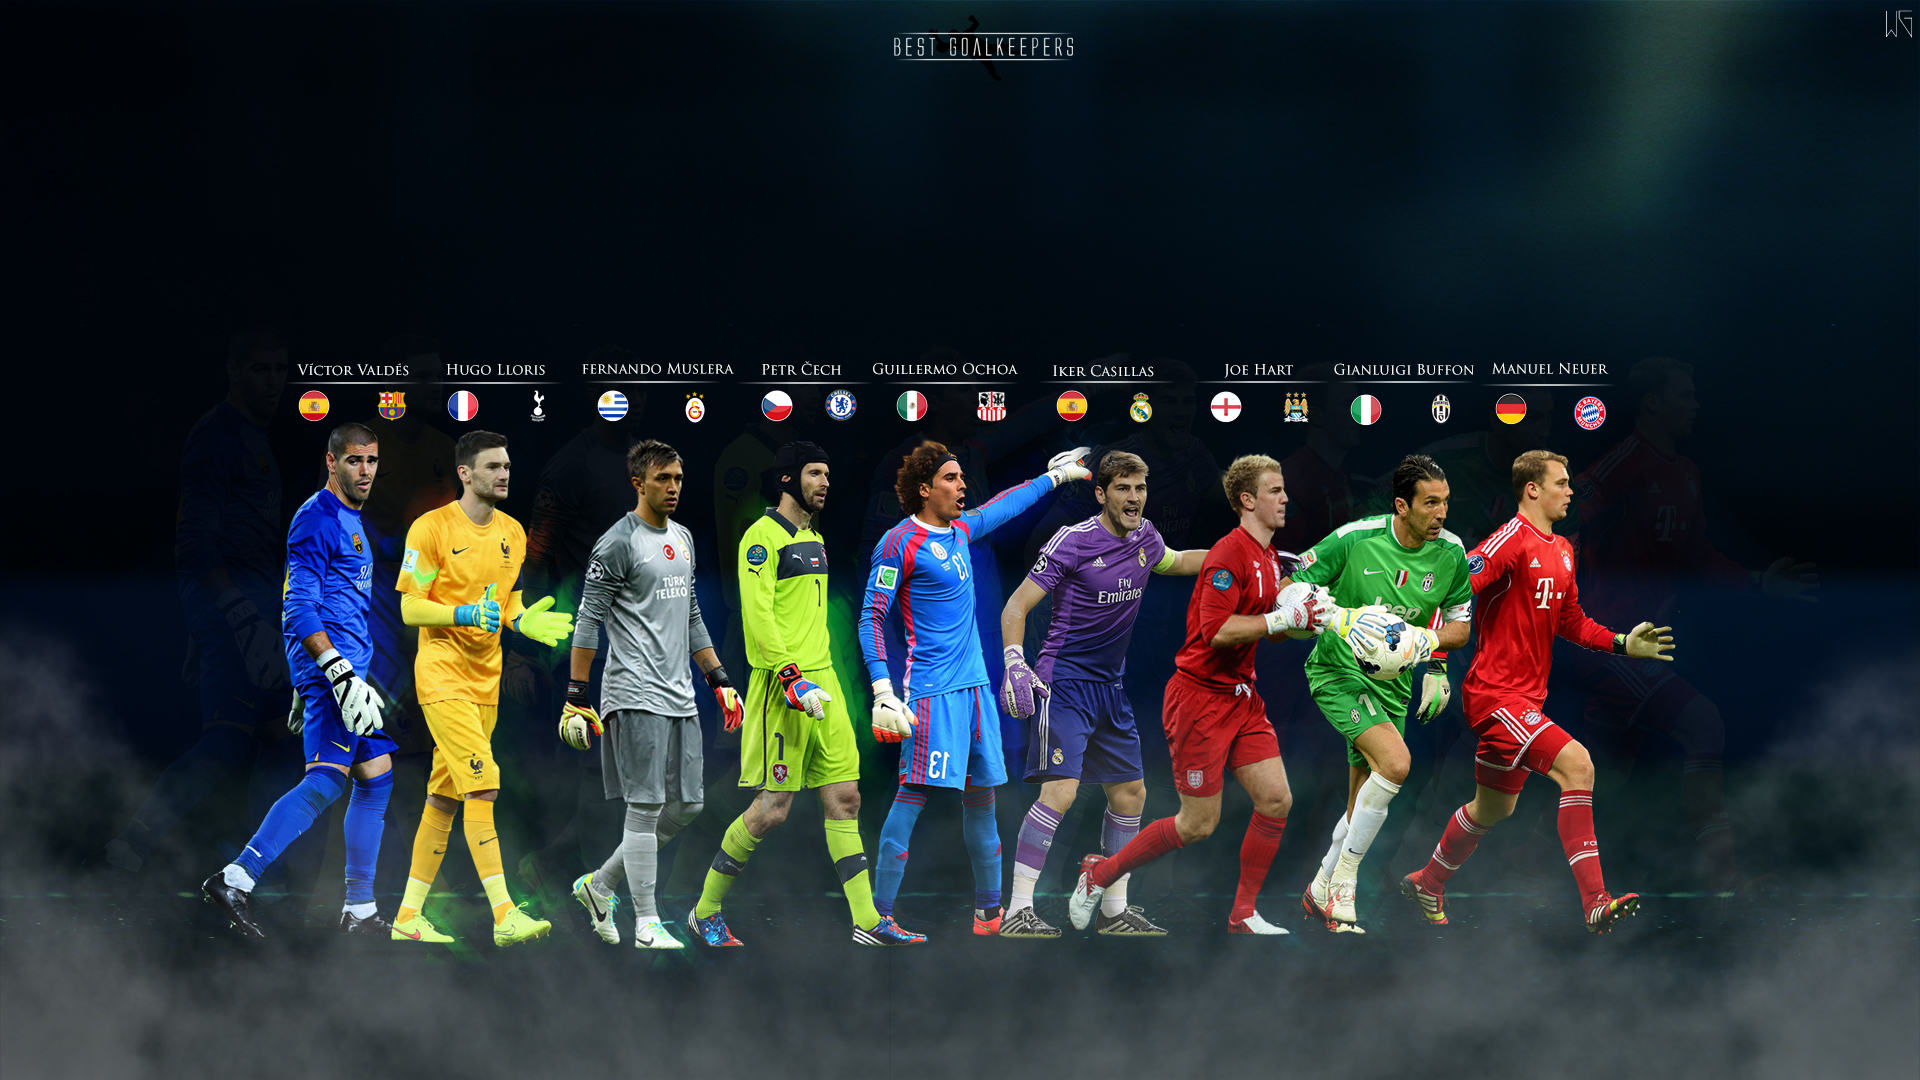 BEST GOALKEEPERS by ByWarf 1920x1080